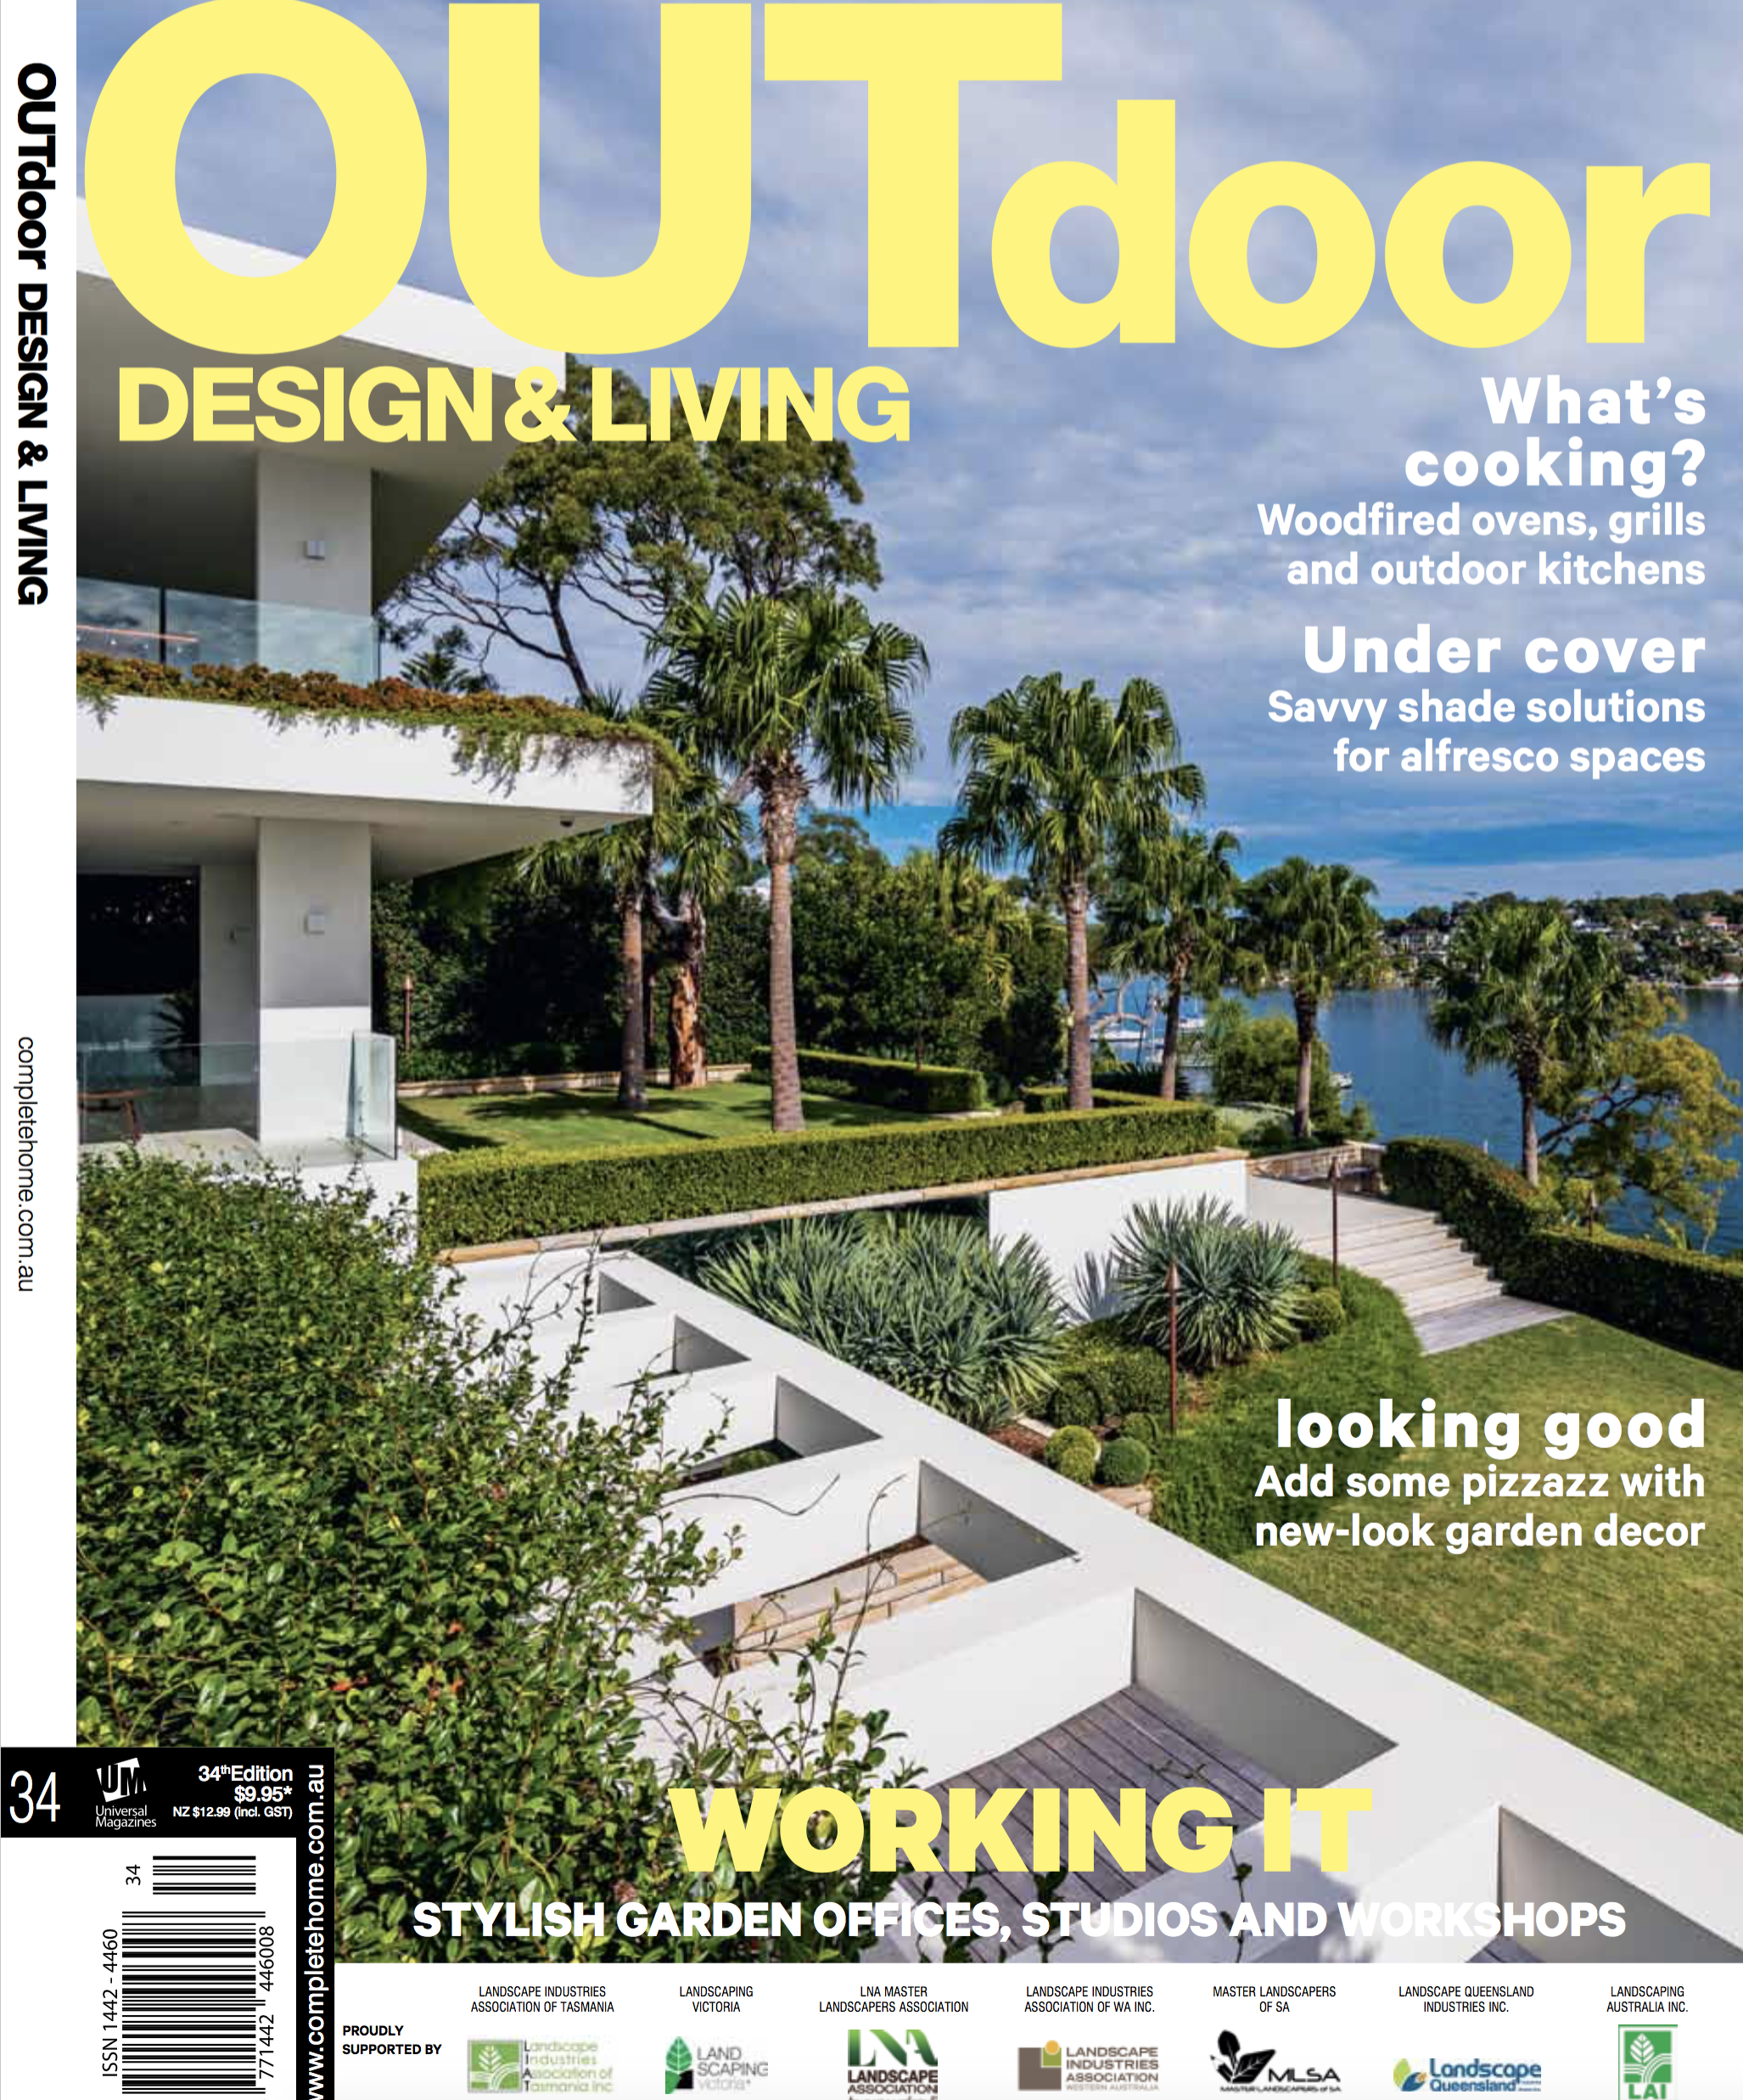 Outdoor Design & Living  February 2017 'Shelley Garden' design featured on cover. Article enclosed about the garden design.